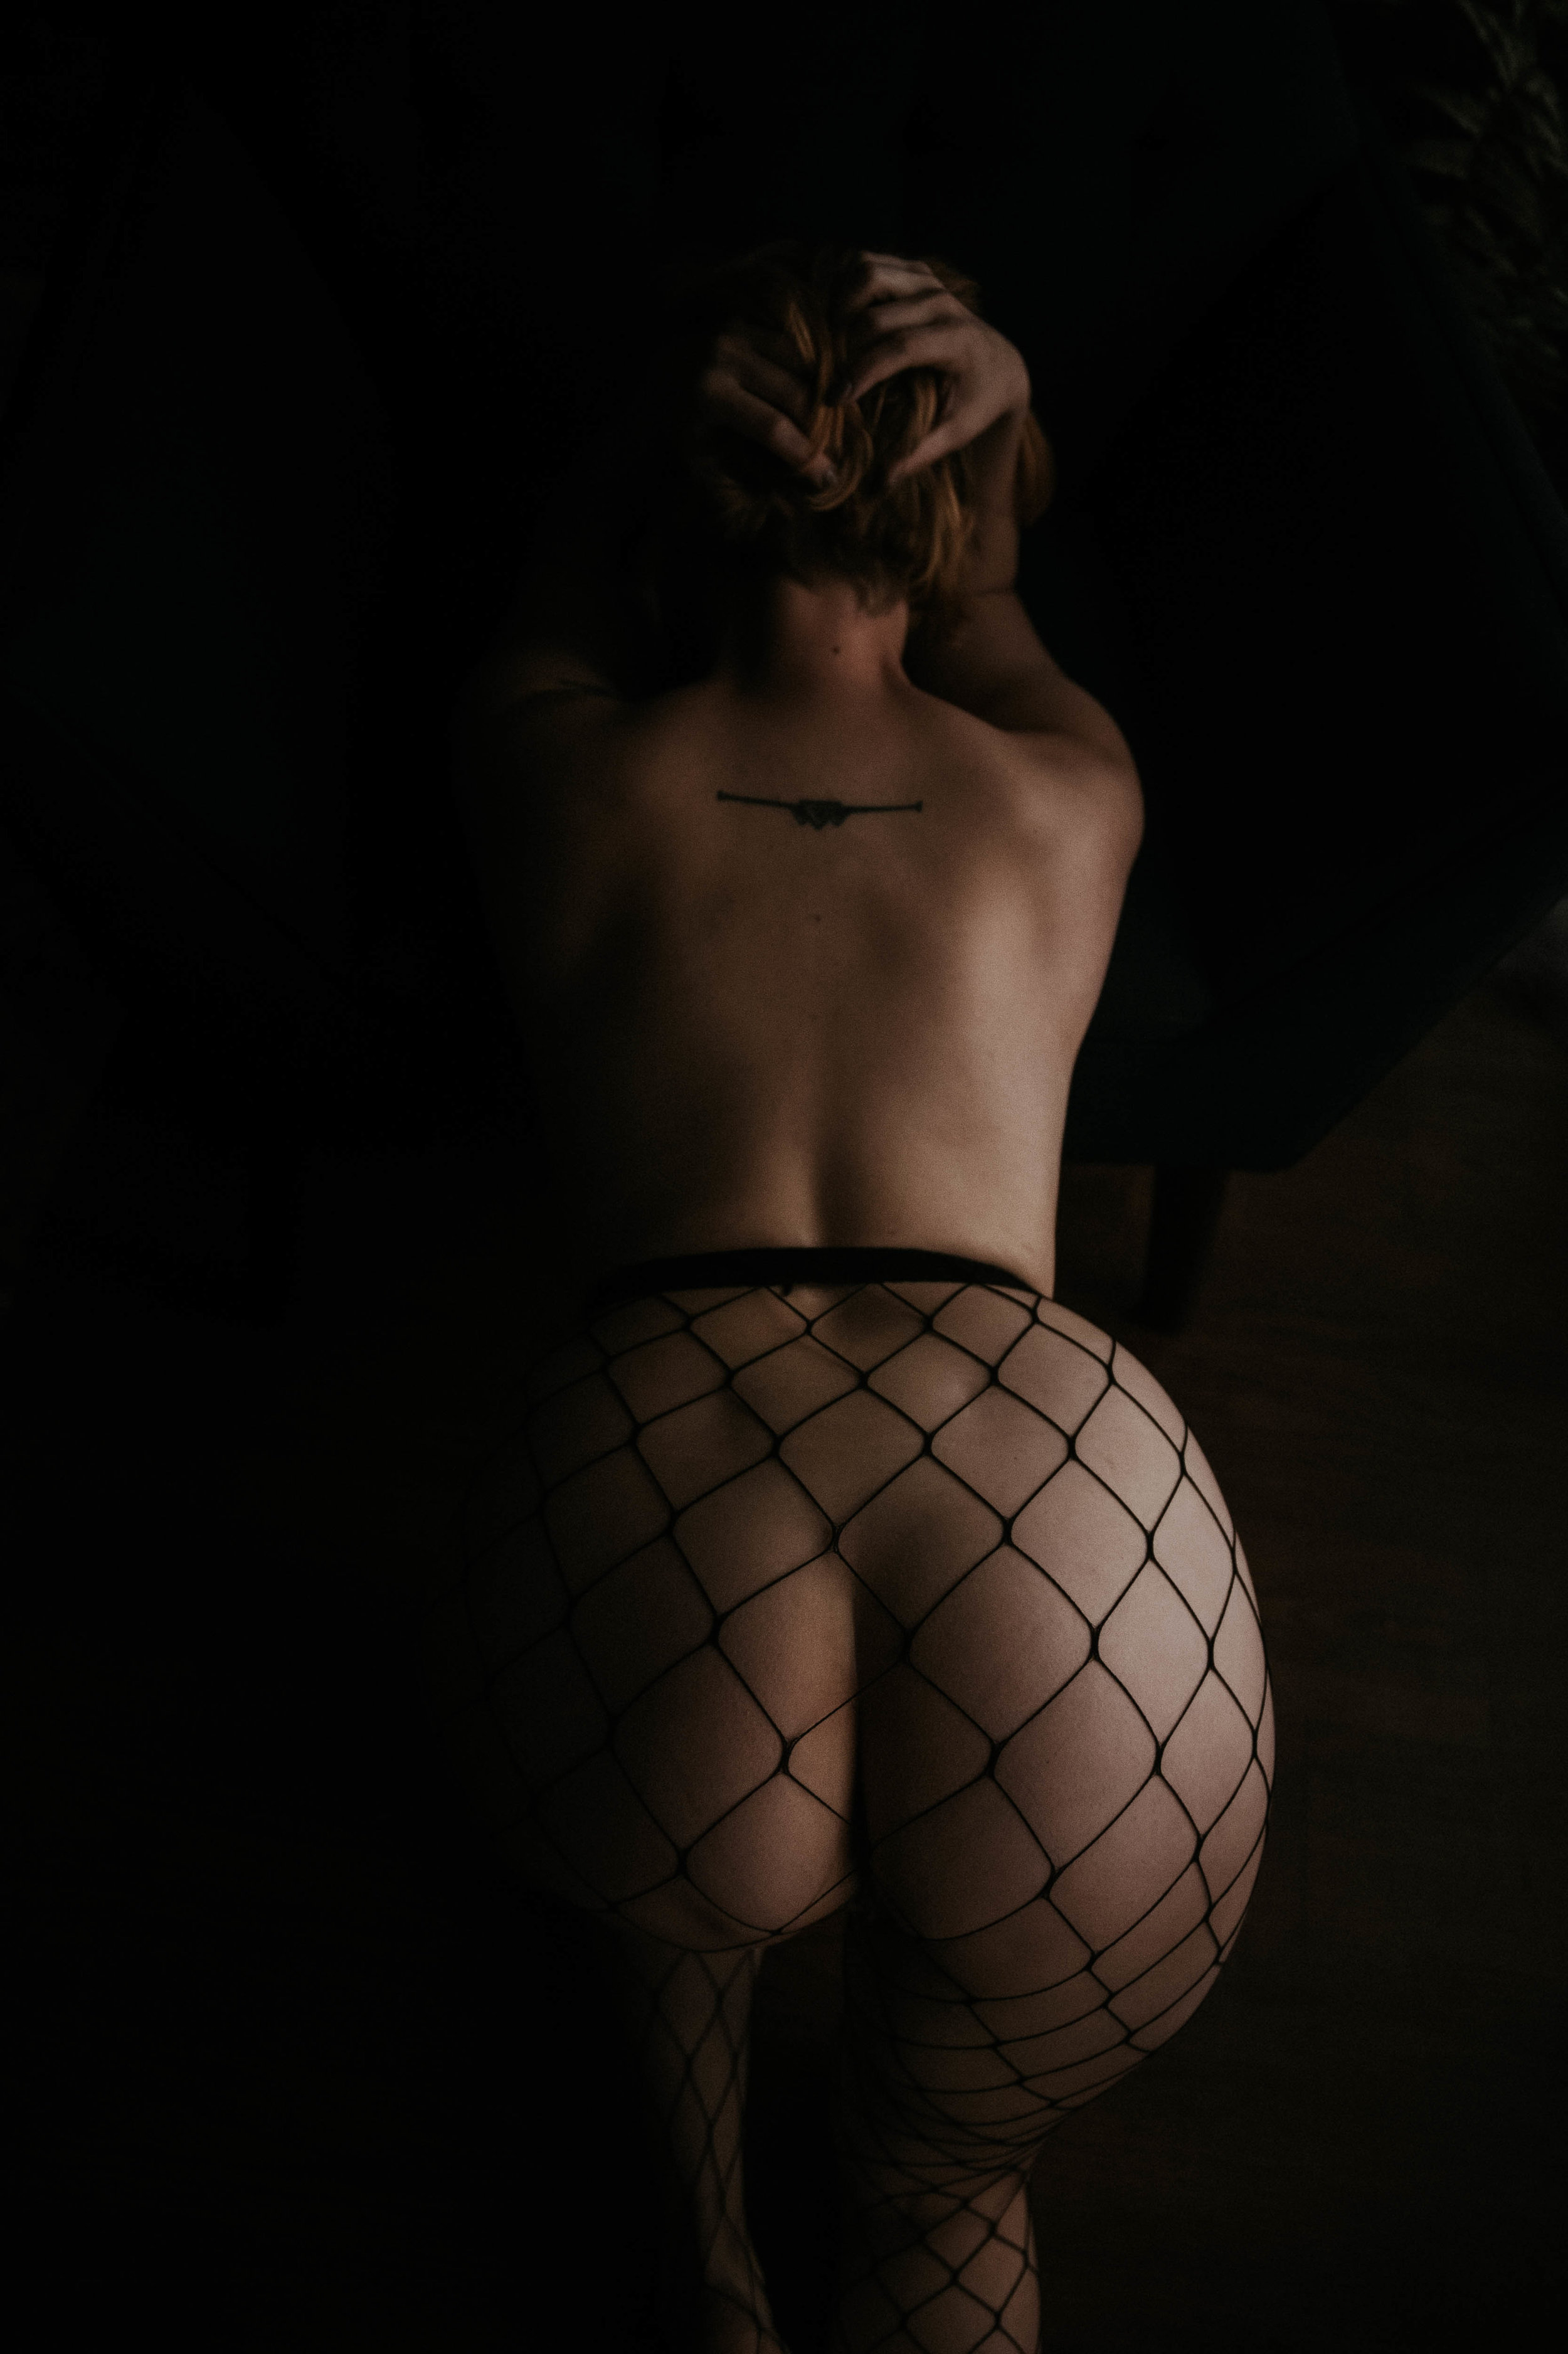 Nude redhead woman in black fishnets kneeling boudoir photography new york studio